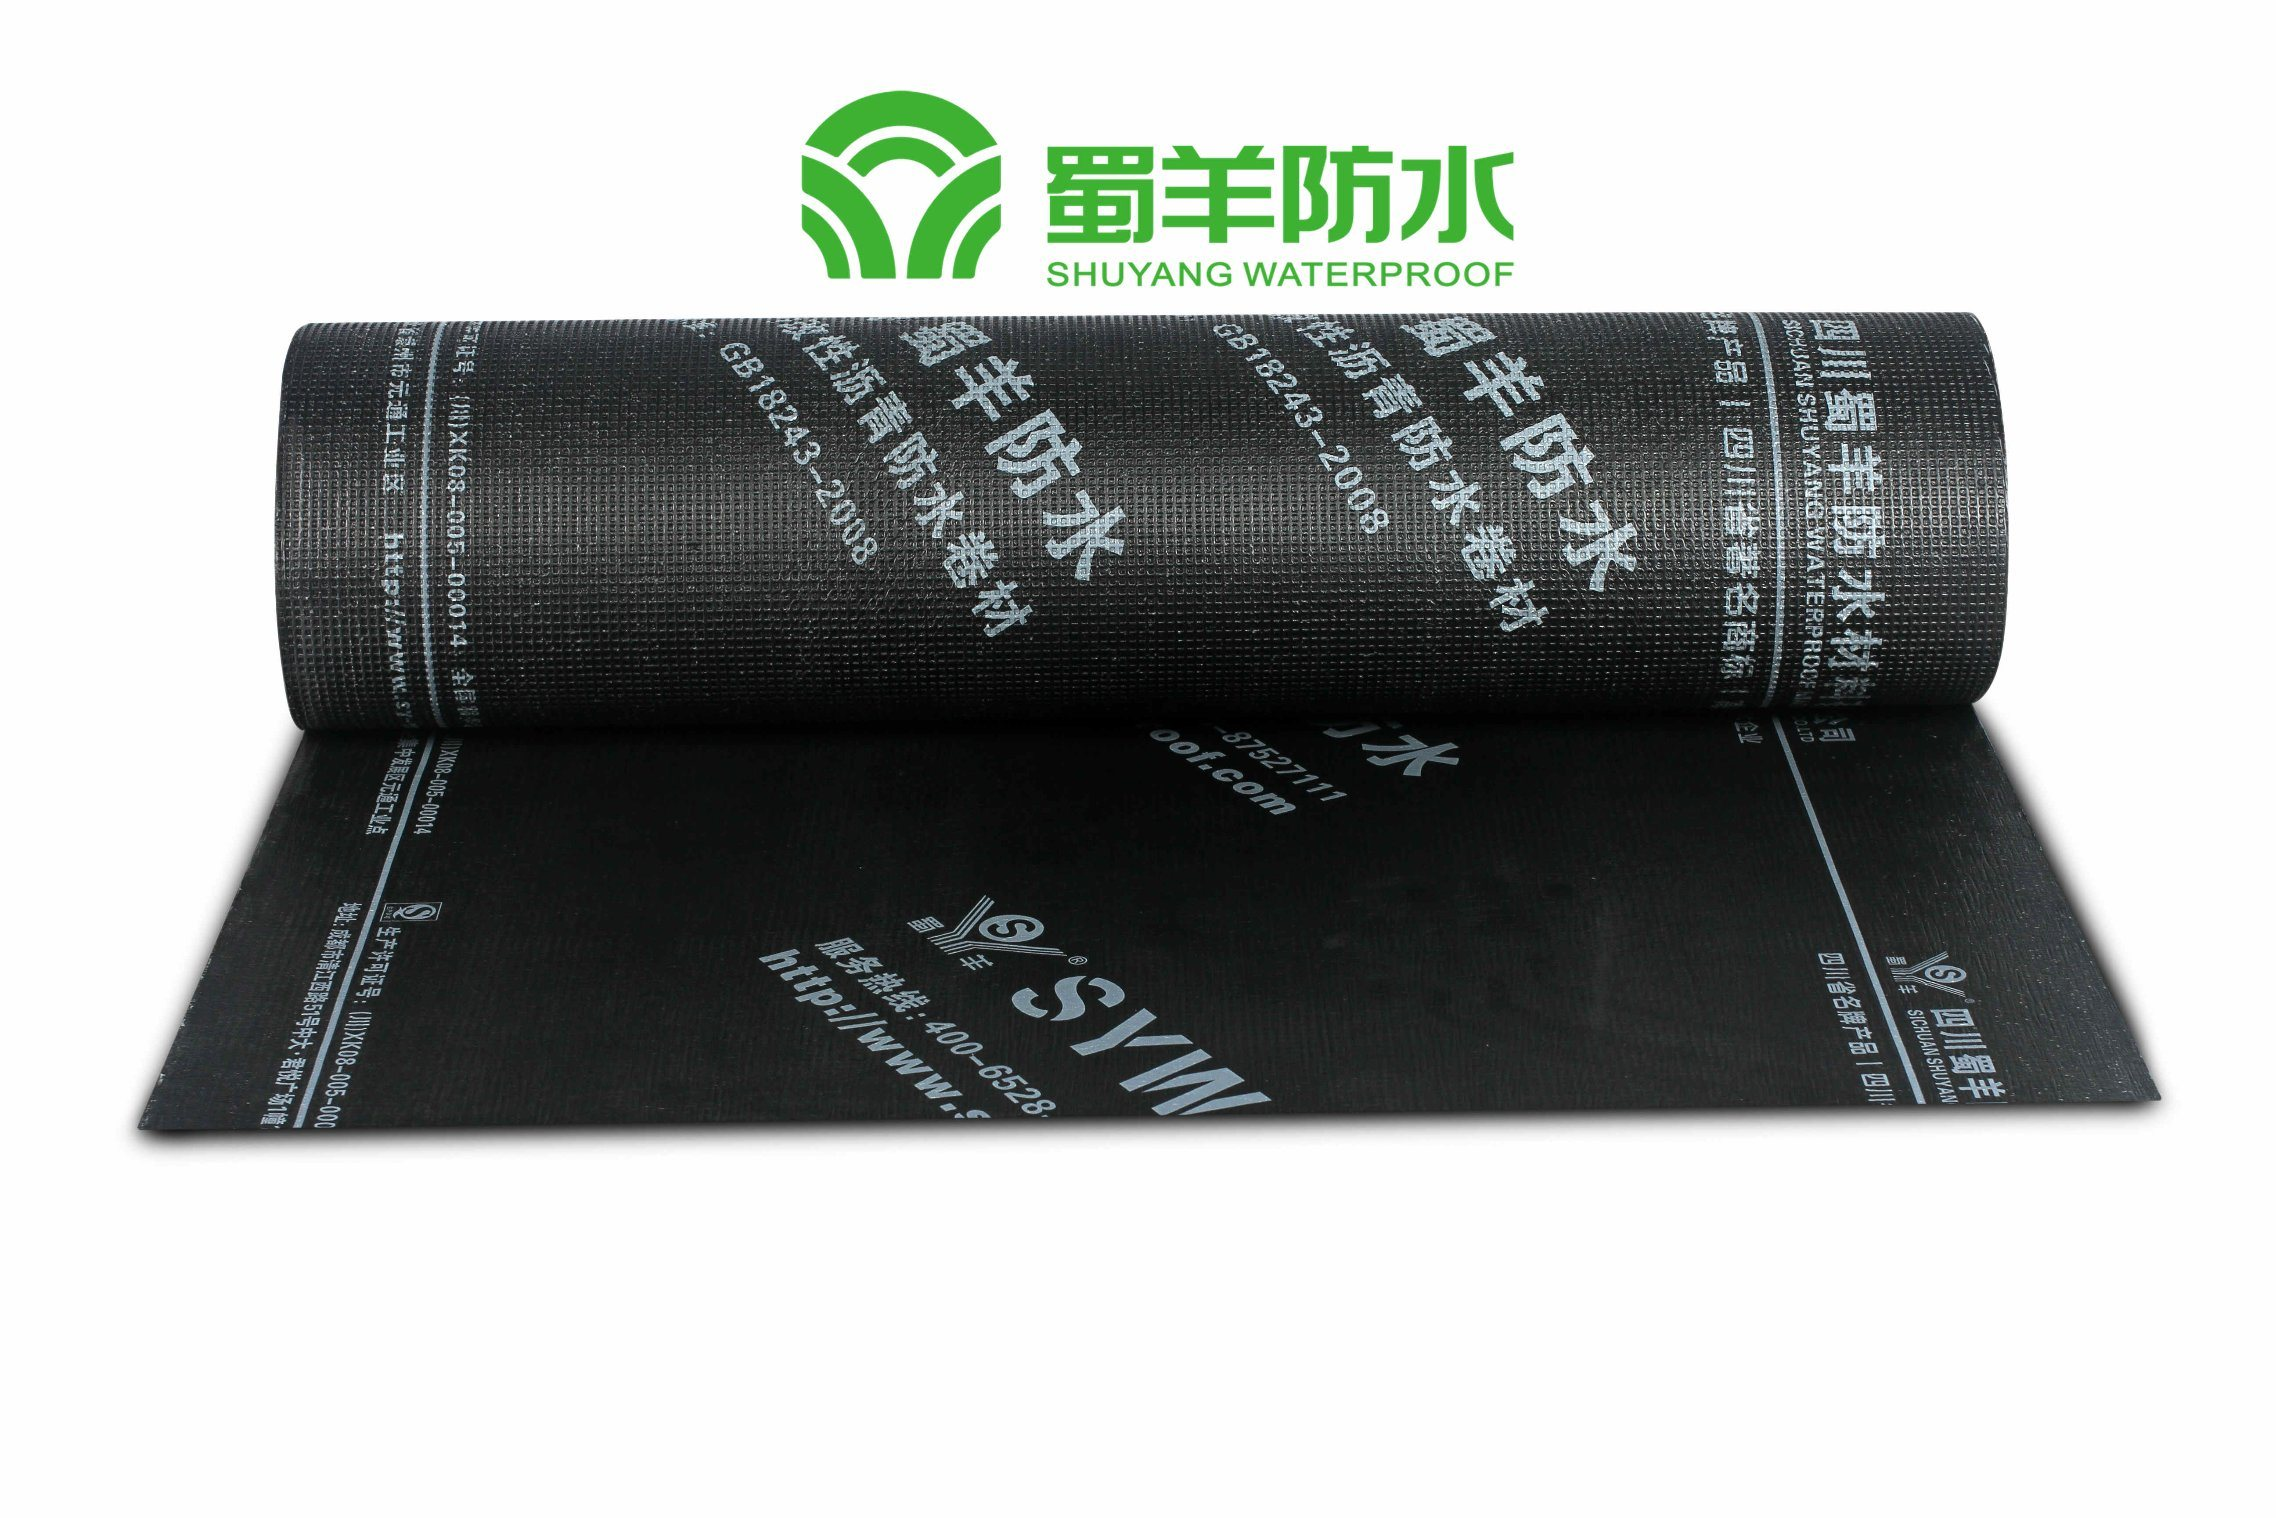 4mm APP Waterproof Membrane PE Film Surface Polyester Reinforced